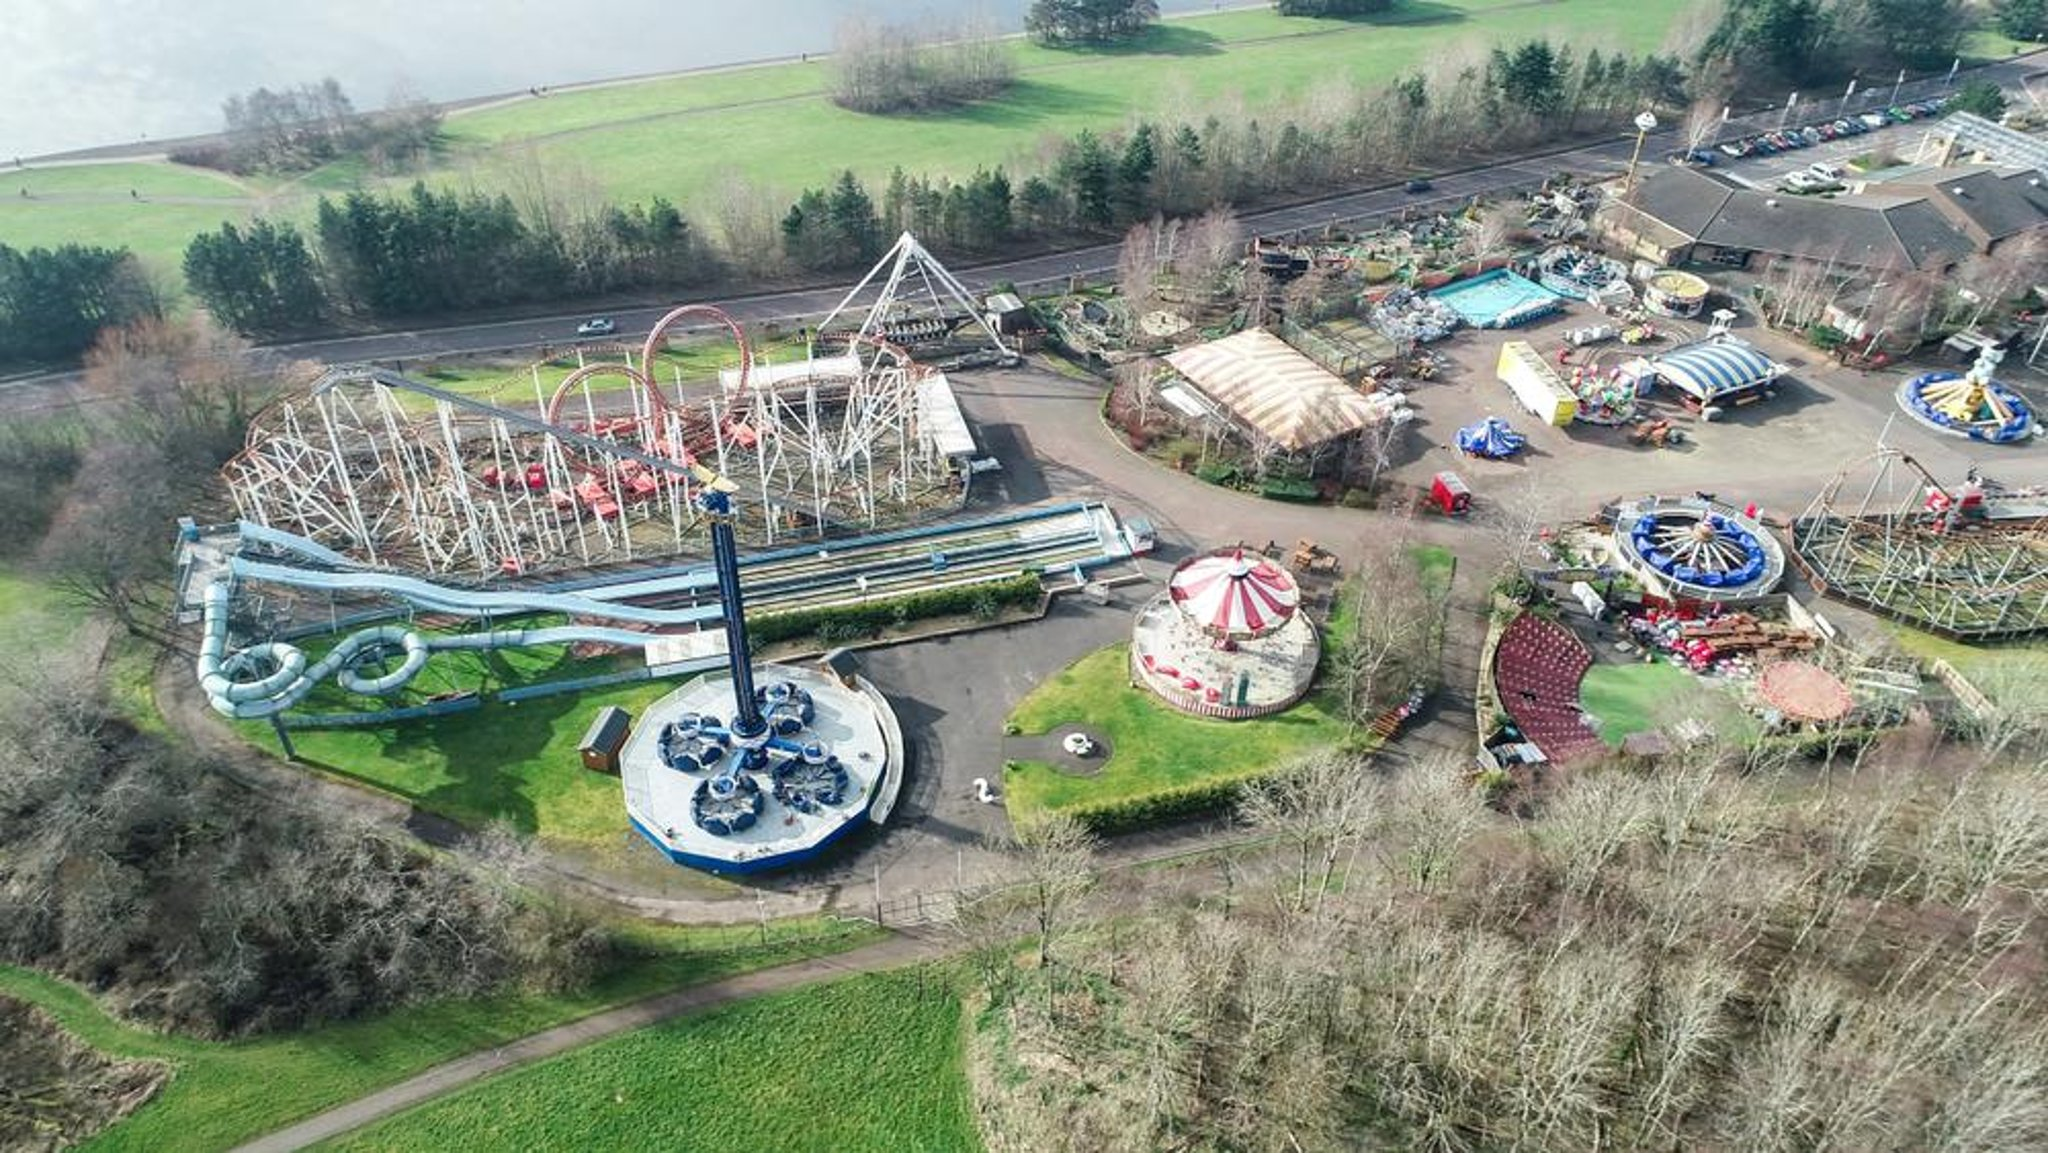 When Will Theme Parks Reopen In Scotland Date Codona S Landmark Forest And Other Attractions Could Open As Lockdown Is Relaxed The Scotsman